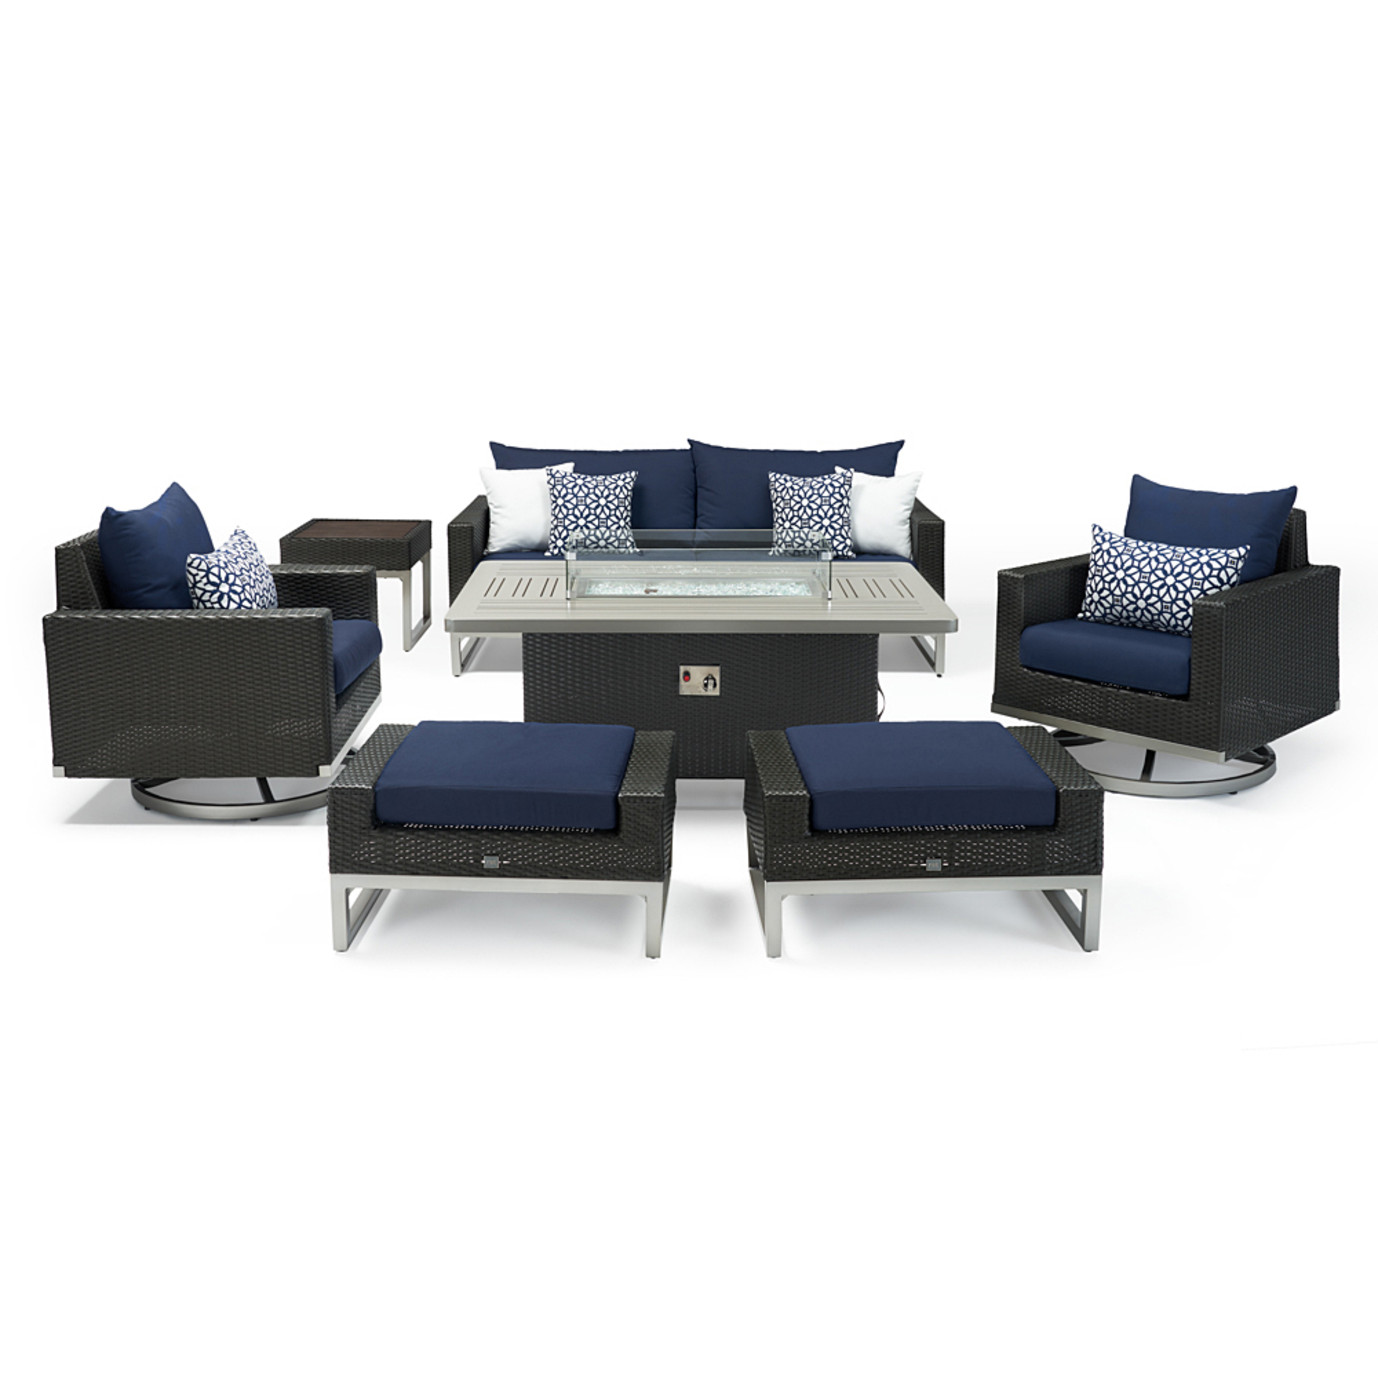 Milo™ Espresso 7 Piece Motion Fire Set - Navy Blue